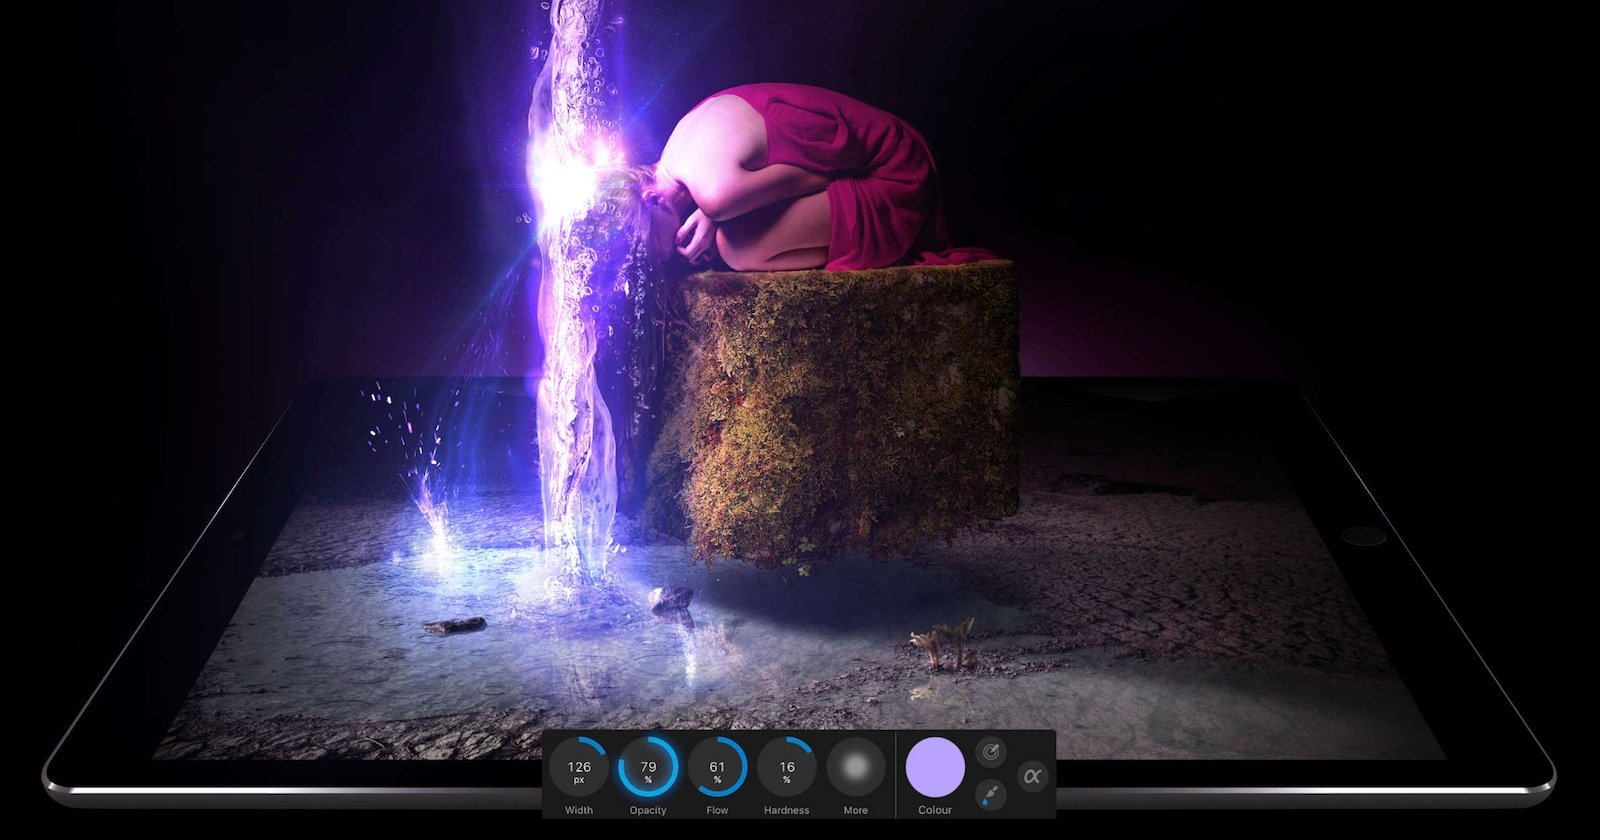 Affinity Photo Comes to iPad: The First Full-Powered Photo Editor on a Tablet